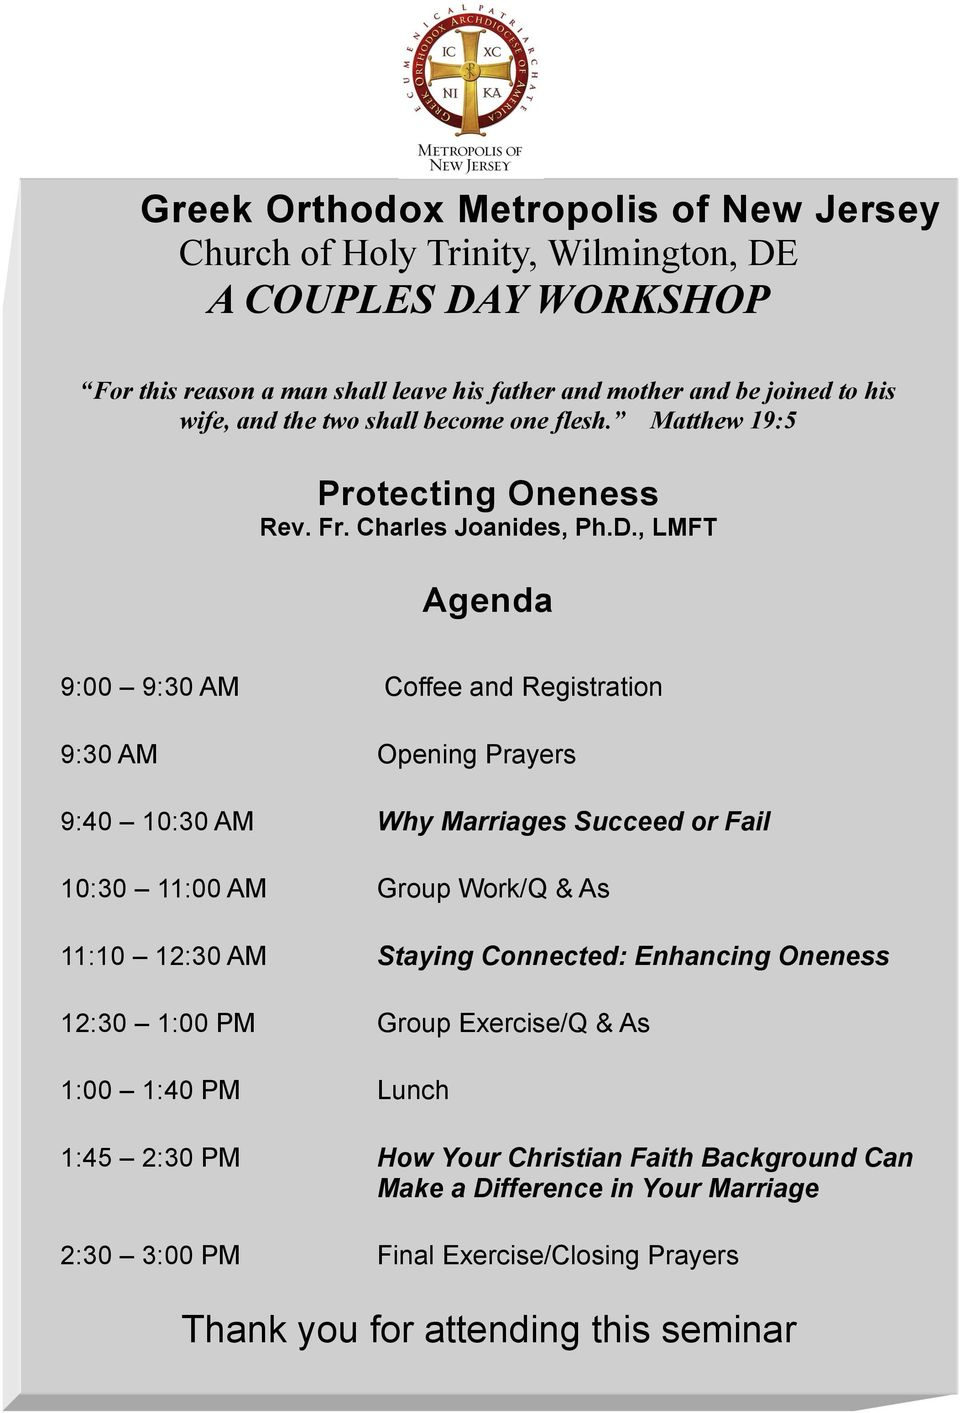 , LMFT Agenda 9:00 9:30 AM Coffee and Registration 9:30 AM Opening Prayers 9:40 10:30 AM Why Marriages Succeed or Fail 10:30 11:00 AM Group Work/Q & As 11:10 12:30 AM Staying